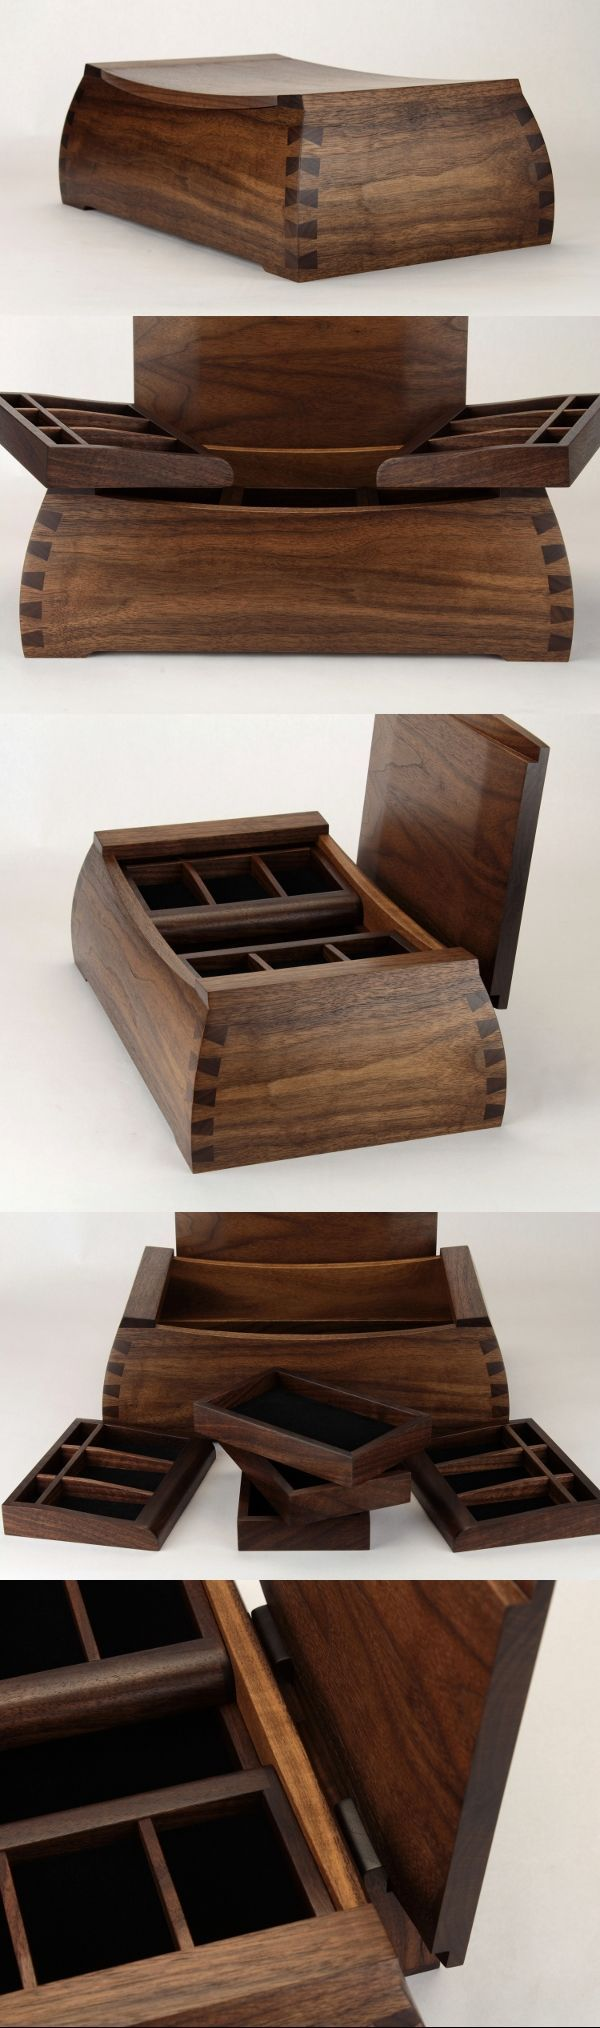 Handcrafted wood jewelry boxes - 5th Wedding Anniversary Box 5 Dovetails On Each Corner And 5 Removable Trays Handmade